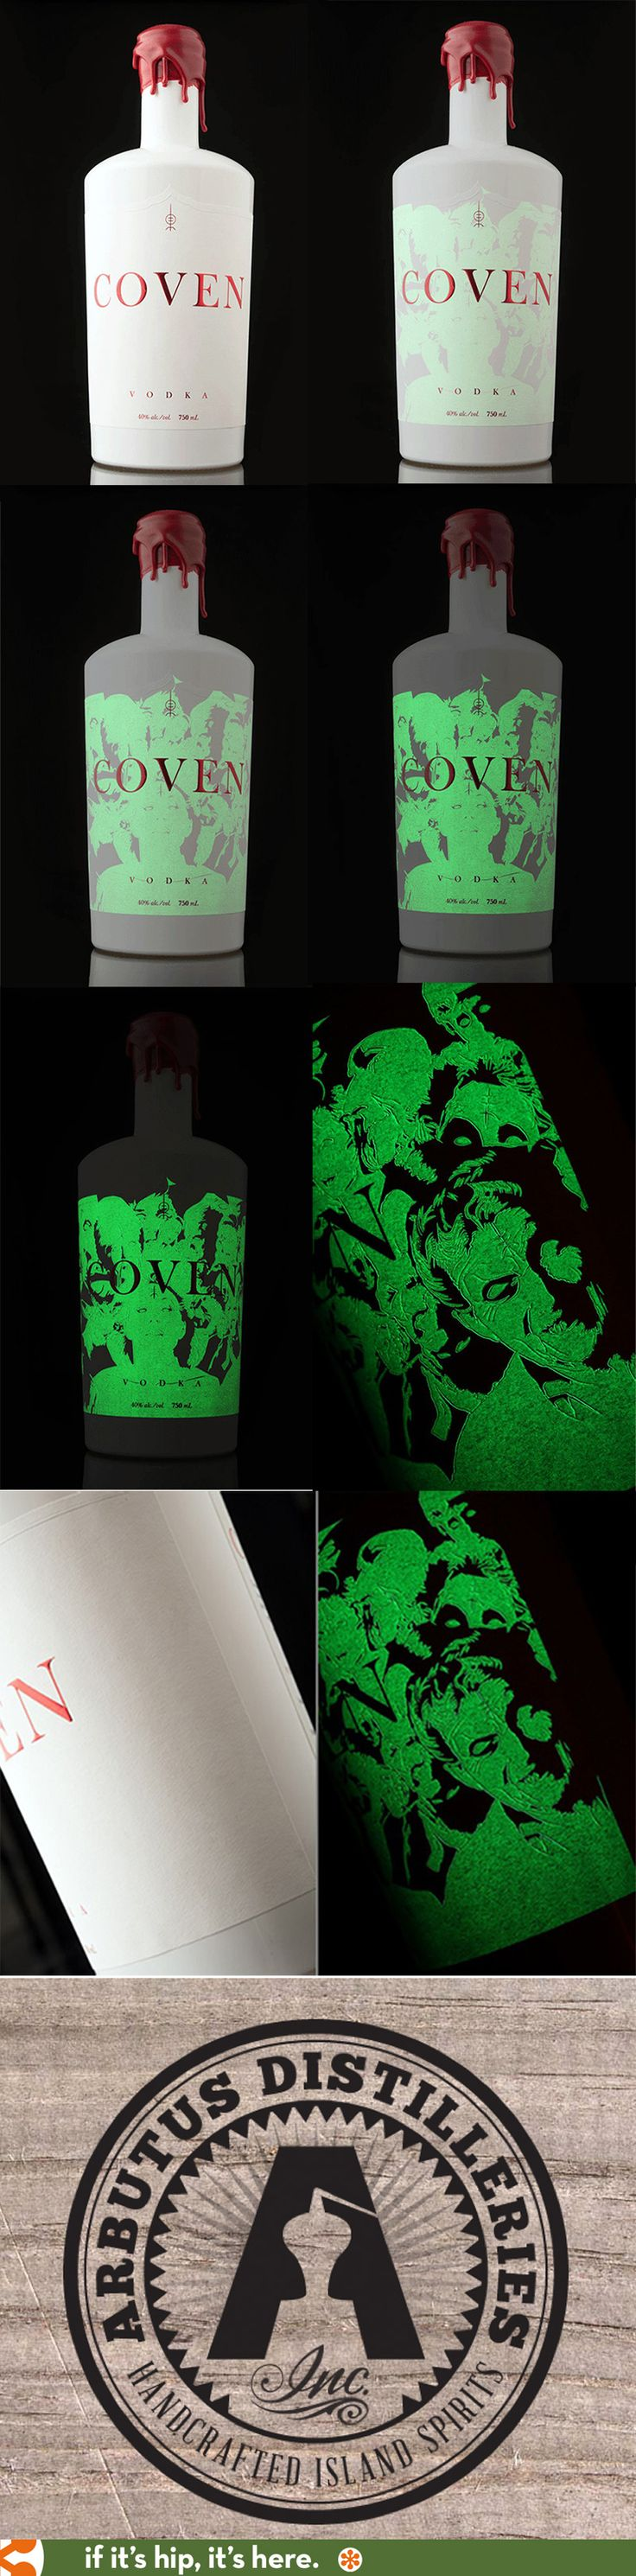 Ampoule laureen luhn design graphique - Coven Vodka S Glow In The Dark Bottle Designed By Hired Guns Creative For Arbutus Distillery